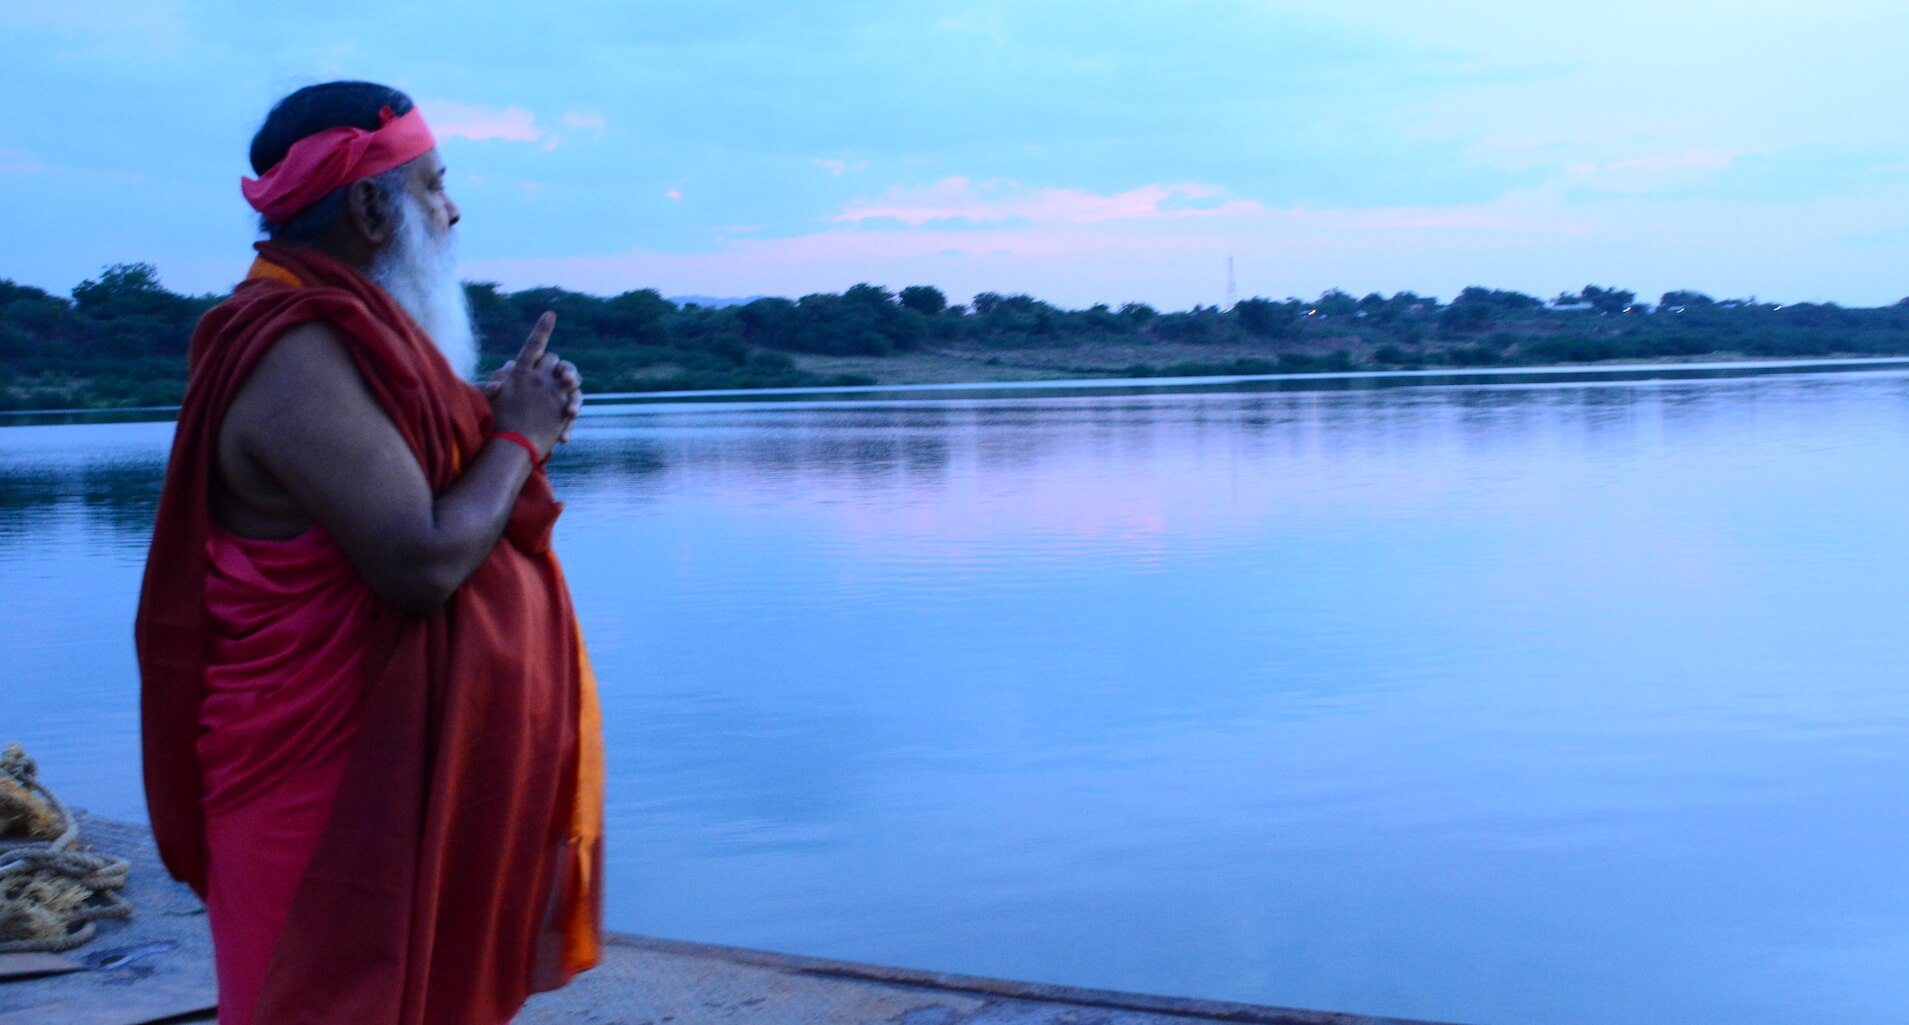 Alakananda RiverFront - Swamiji at Alakananda - Photo 1